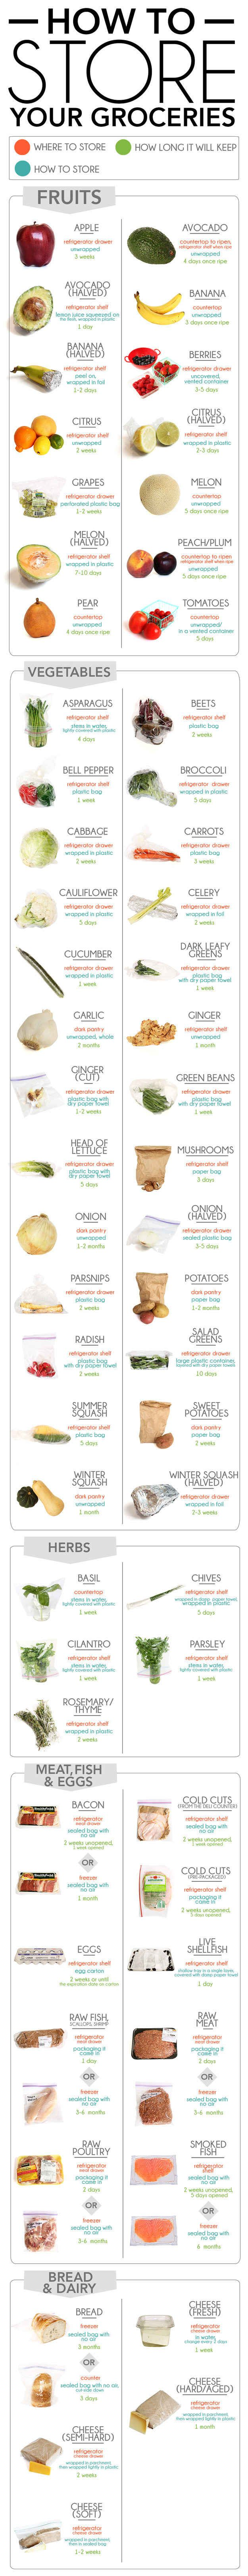 This Is Exactly How To Store Your Groceries- great resource for how to keep things fresher longer.